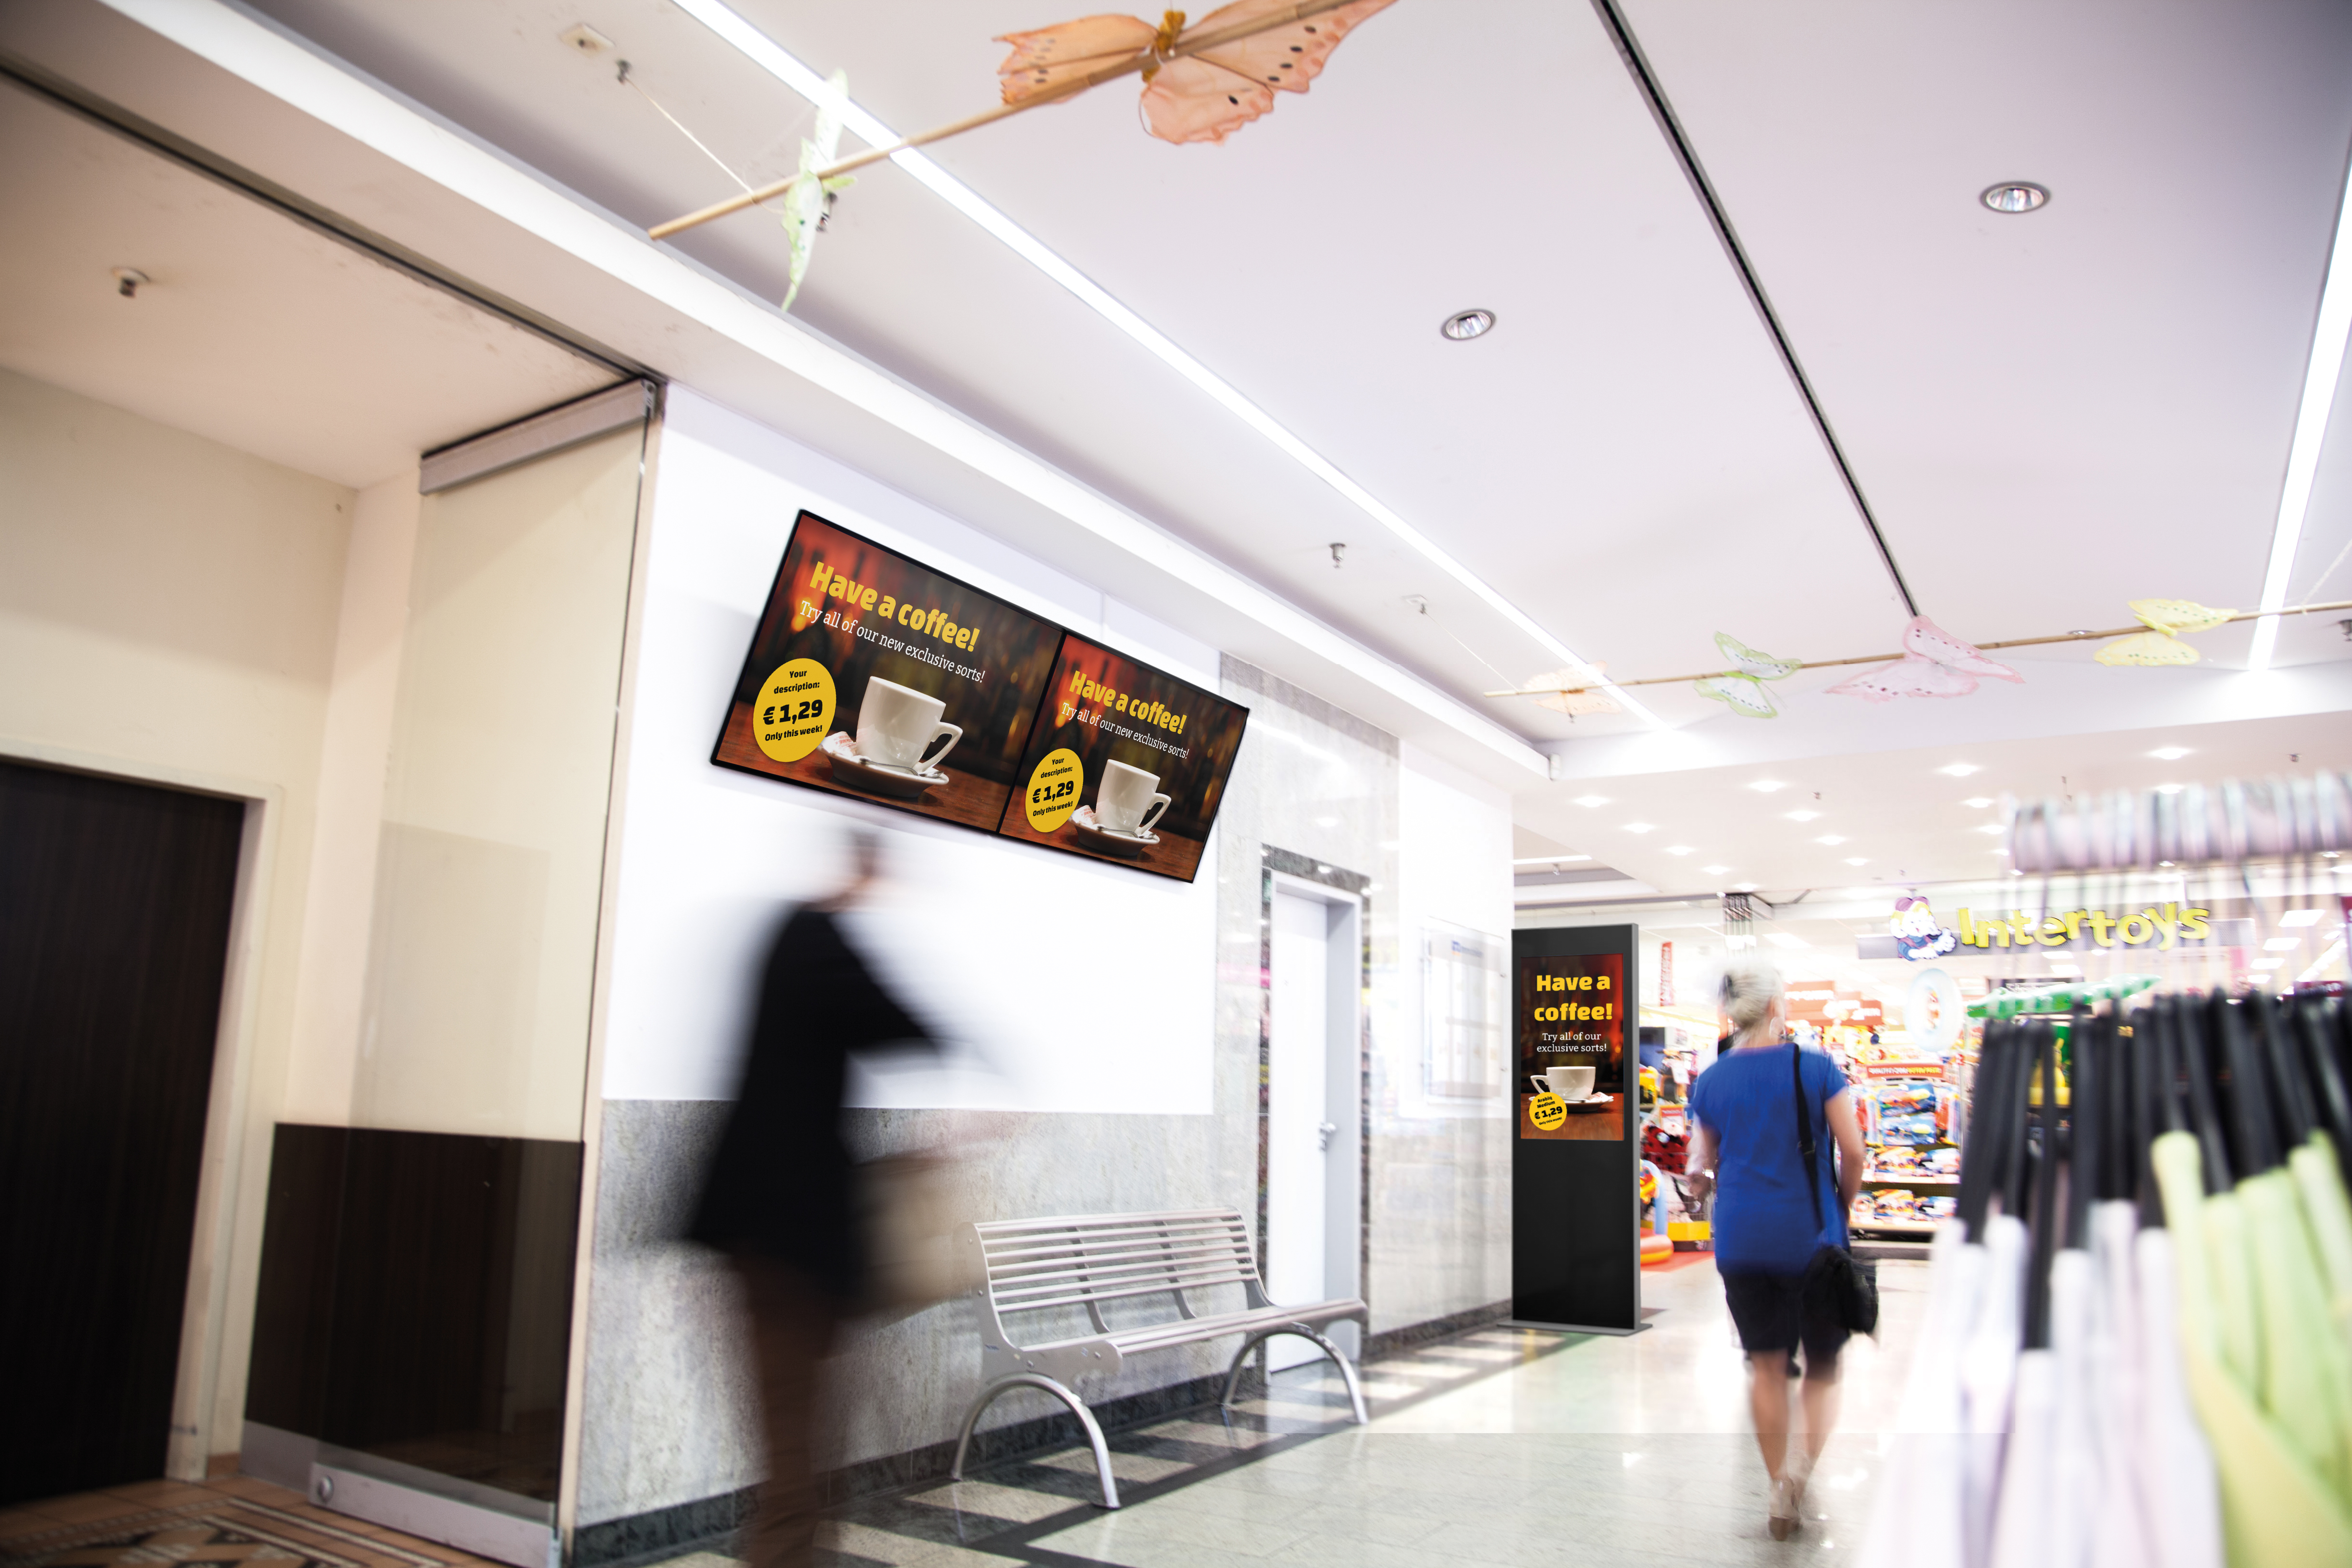 viewneo digital-signage-stele-viewneo-46-zoll-shopping-mall